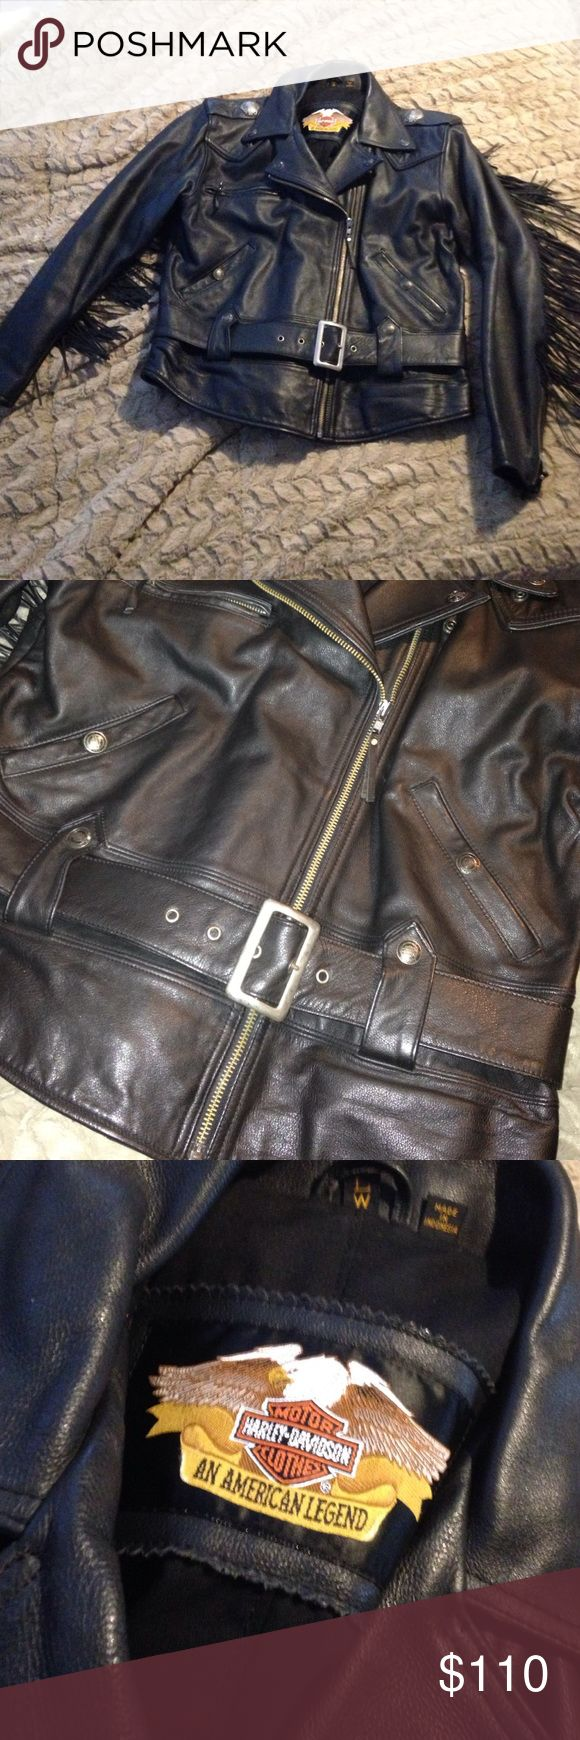 Harley Davidson Ladies leather jacket Black leather jacket with fringe on sleeves and back. Like new condition, only worn a couple of times. Just hanging in my closet-needs a loving home❤ Harley-Davidson Jackets & Coats